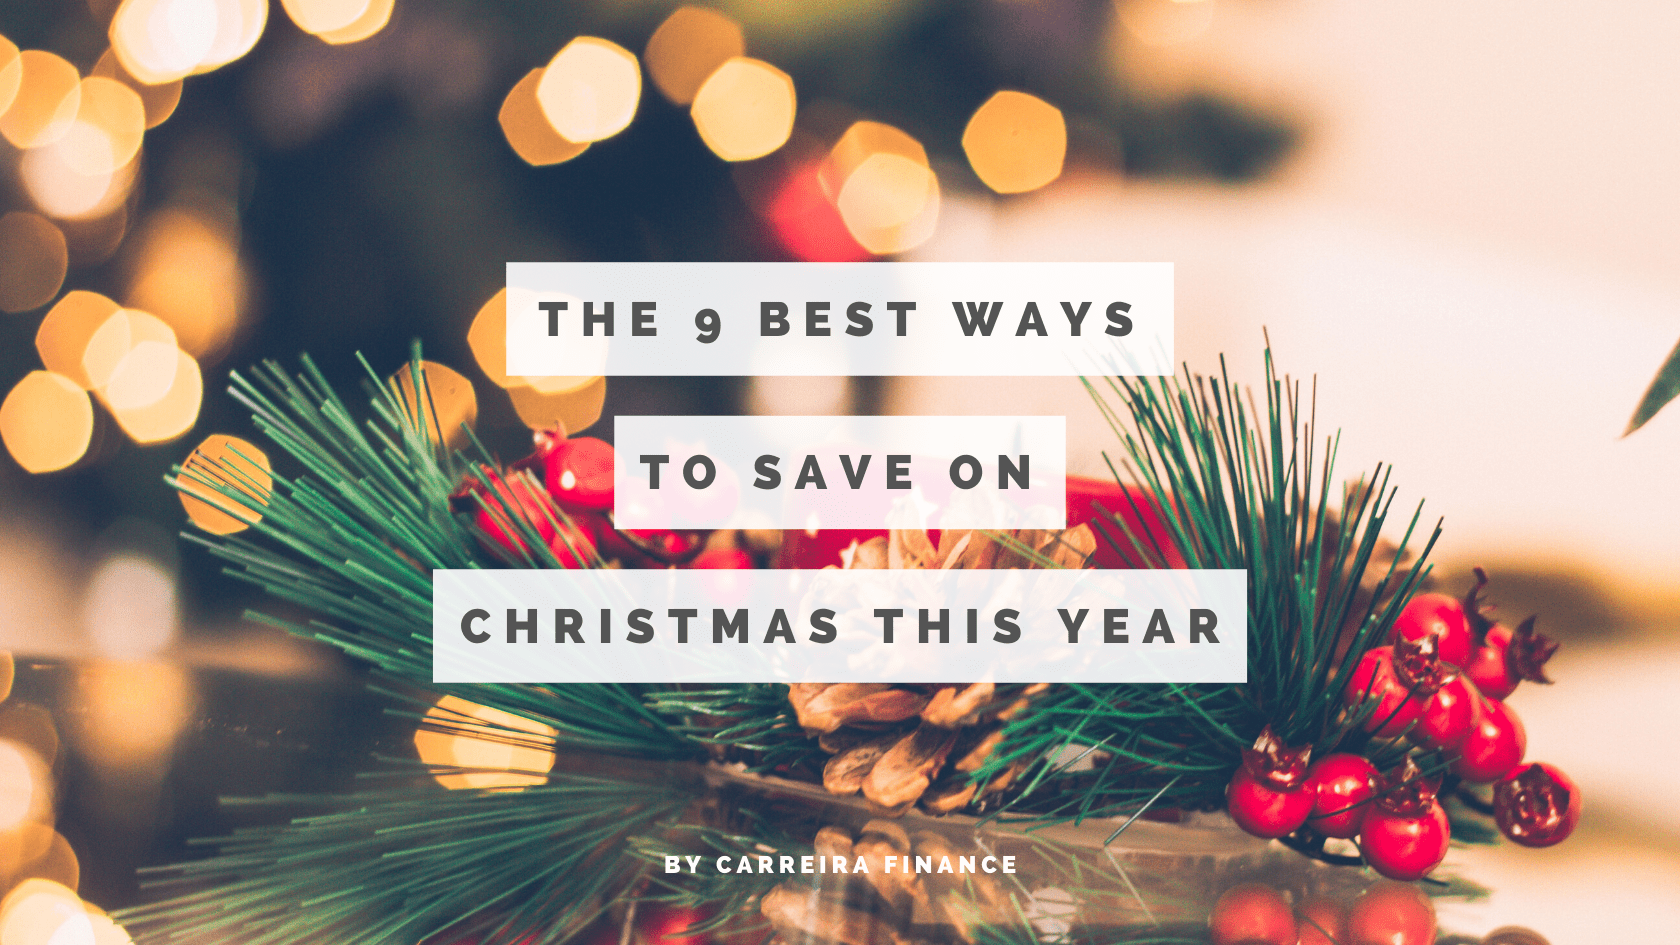 The 9 Best Ways To Save On Christmas This Year - Carreira Finance